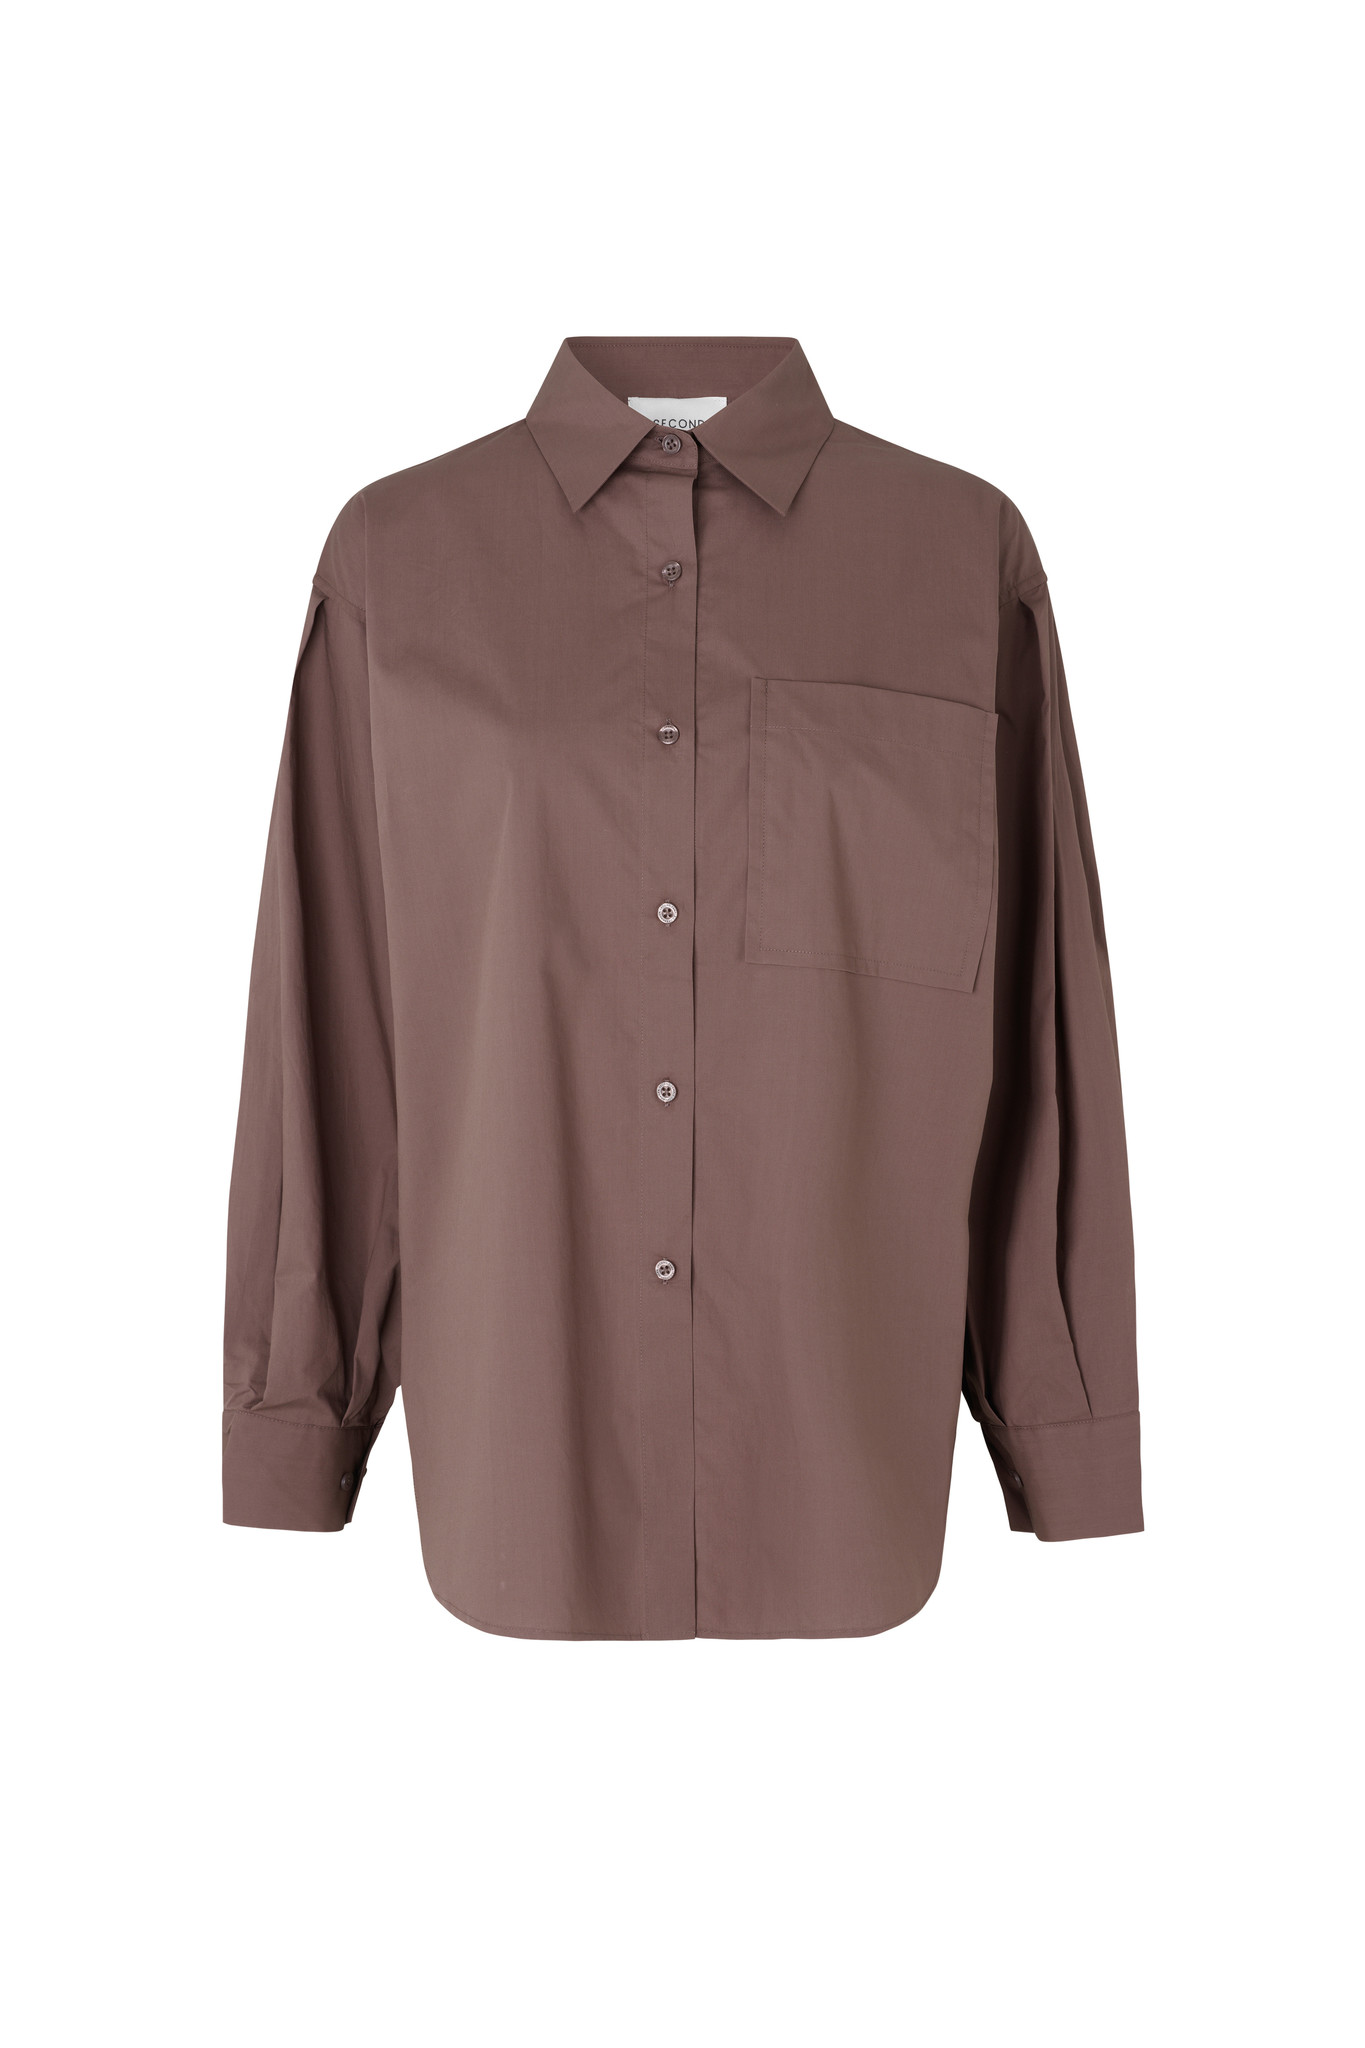 Larkin New Shirt - Peppercorn-1